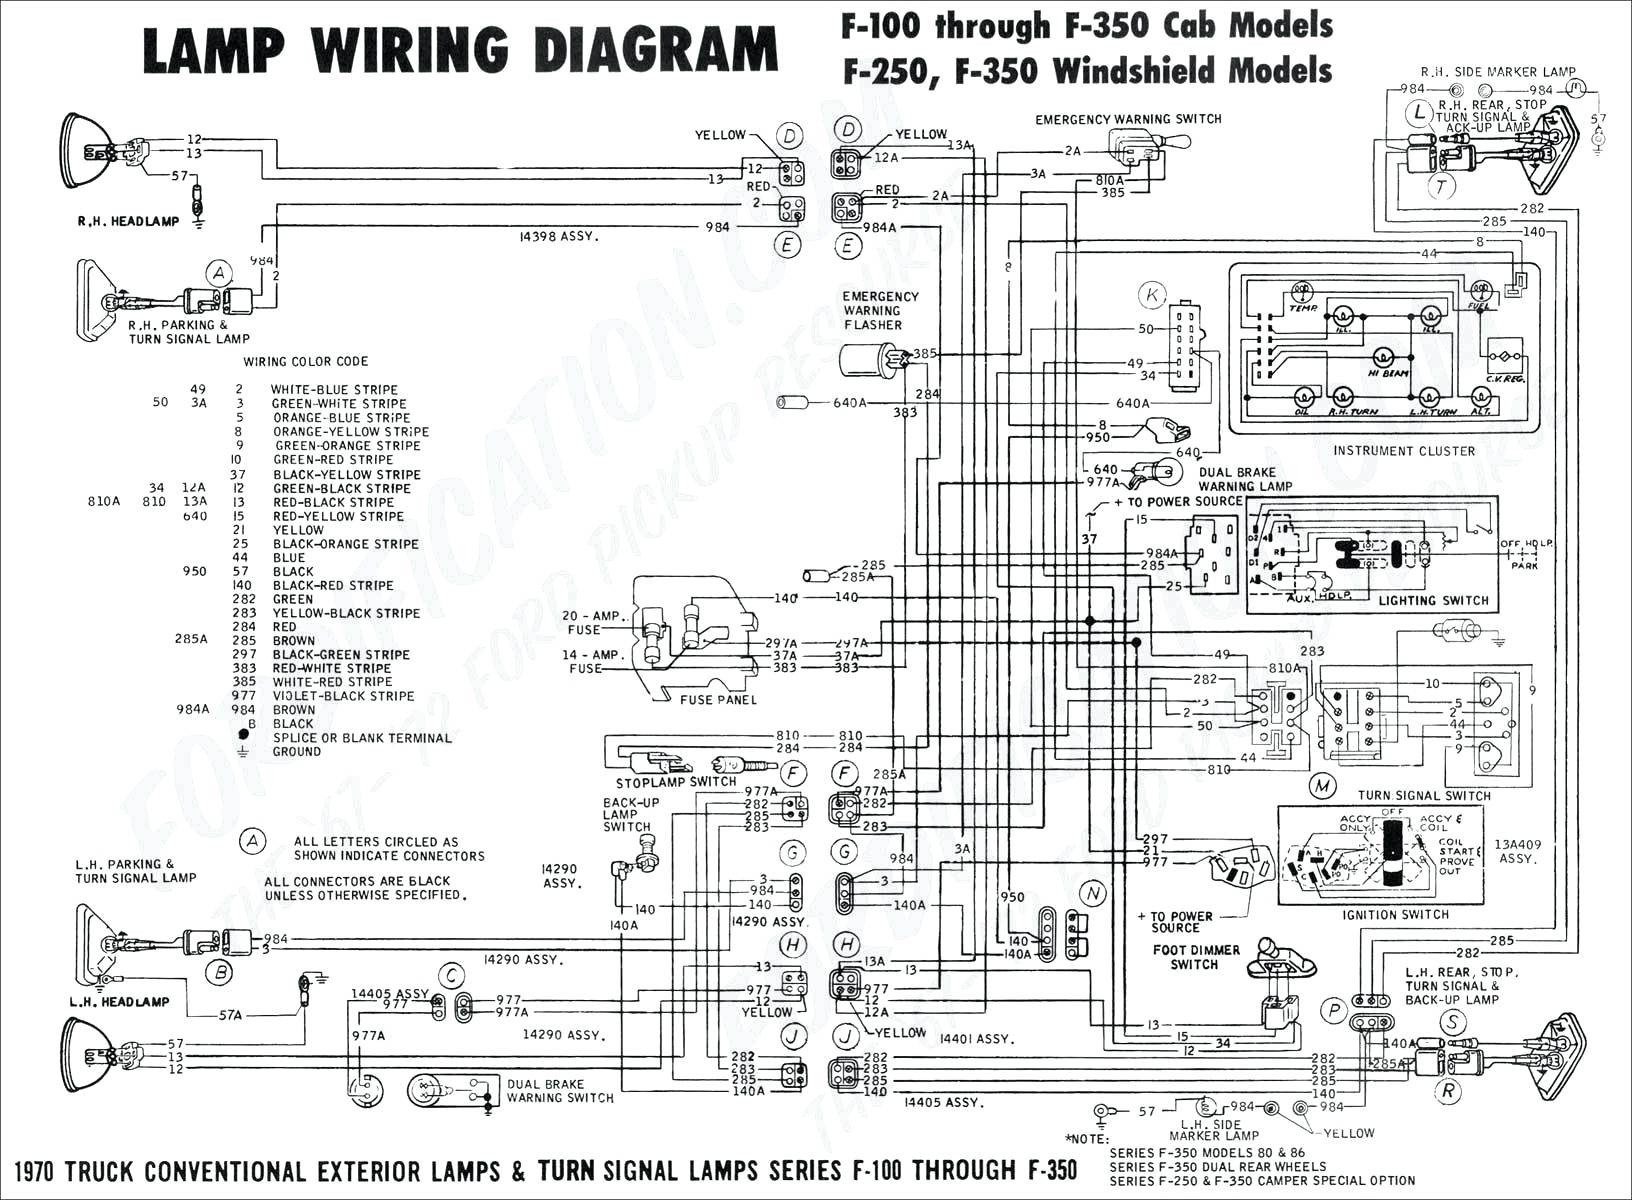 2006 Hummer H3 Engine Diagram ford F 350 Wiring Diagram Ac Another Blog About Wiring Diagram • Of 2006 Hummer H3 Engine Diagram Unique 2006 Dodge Charger Relay Diagram • Electrical Outlet Symbol 2018